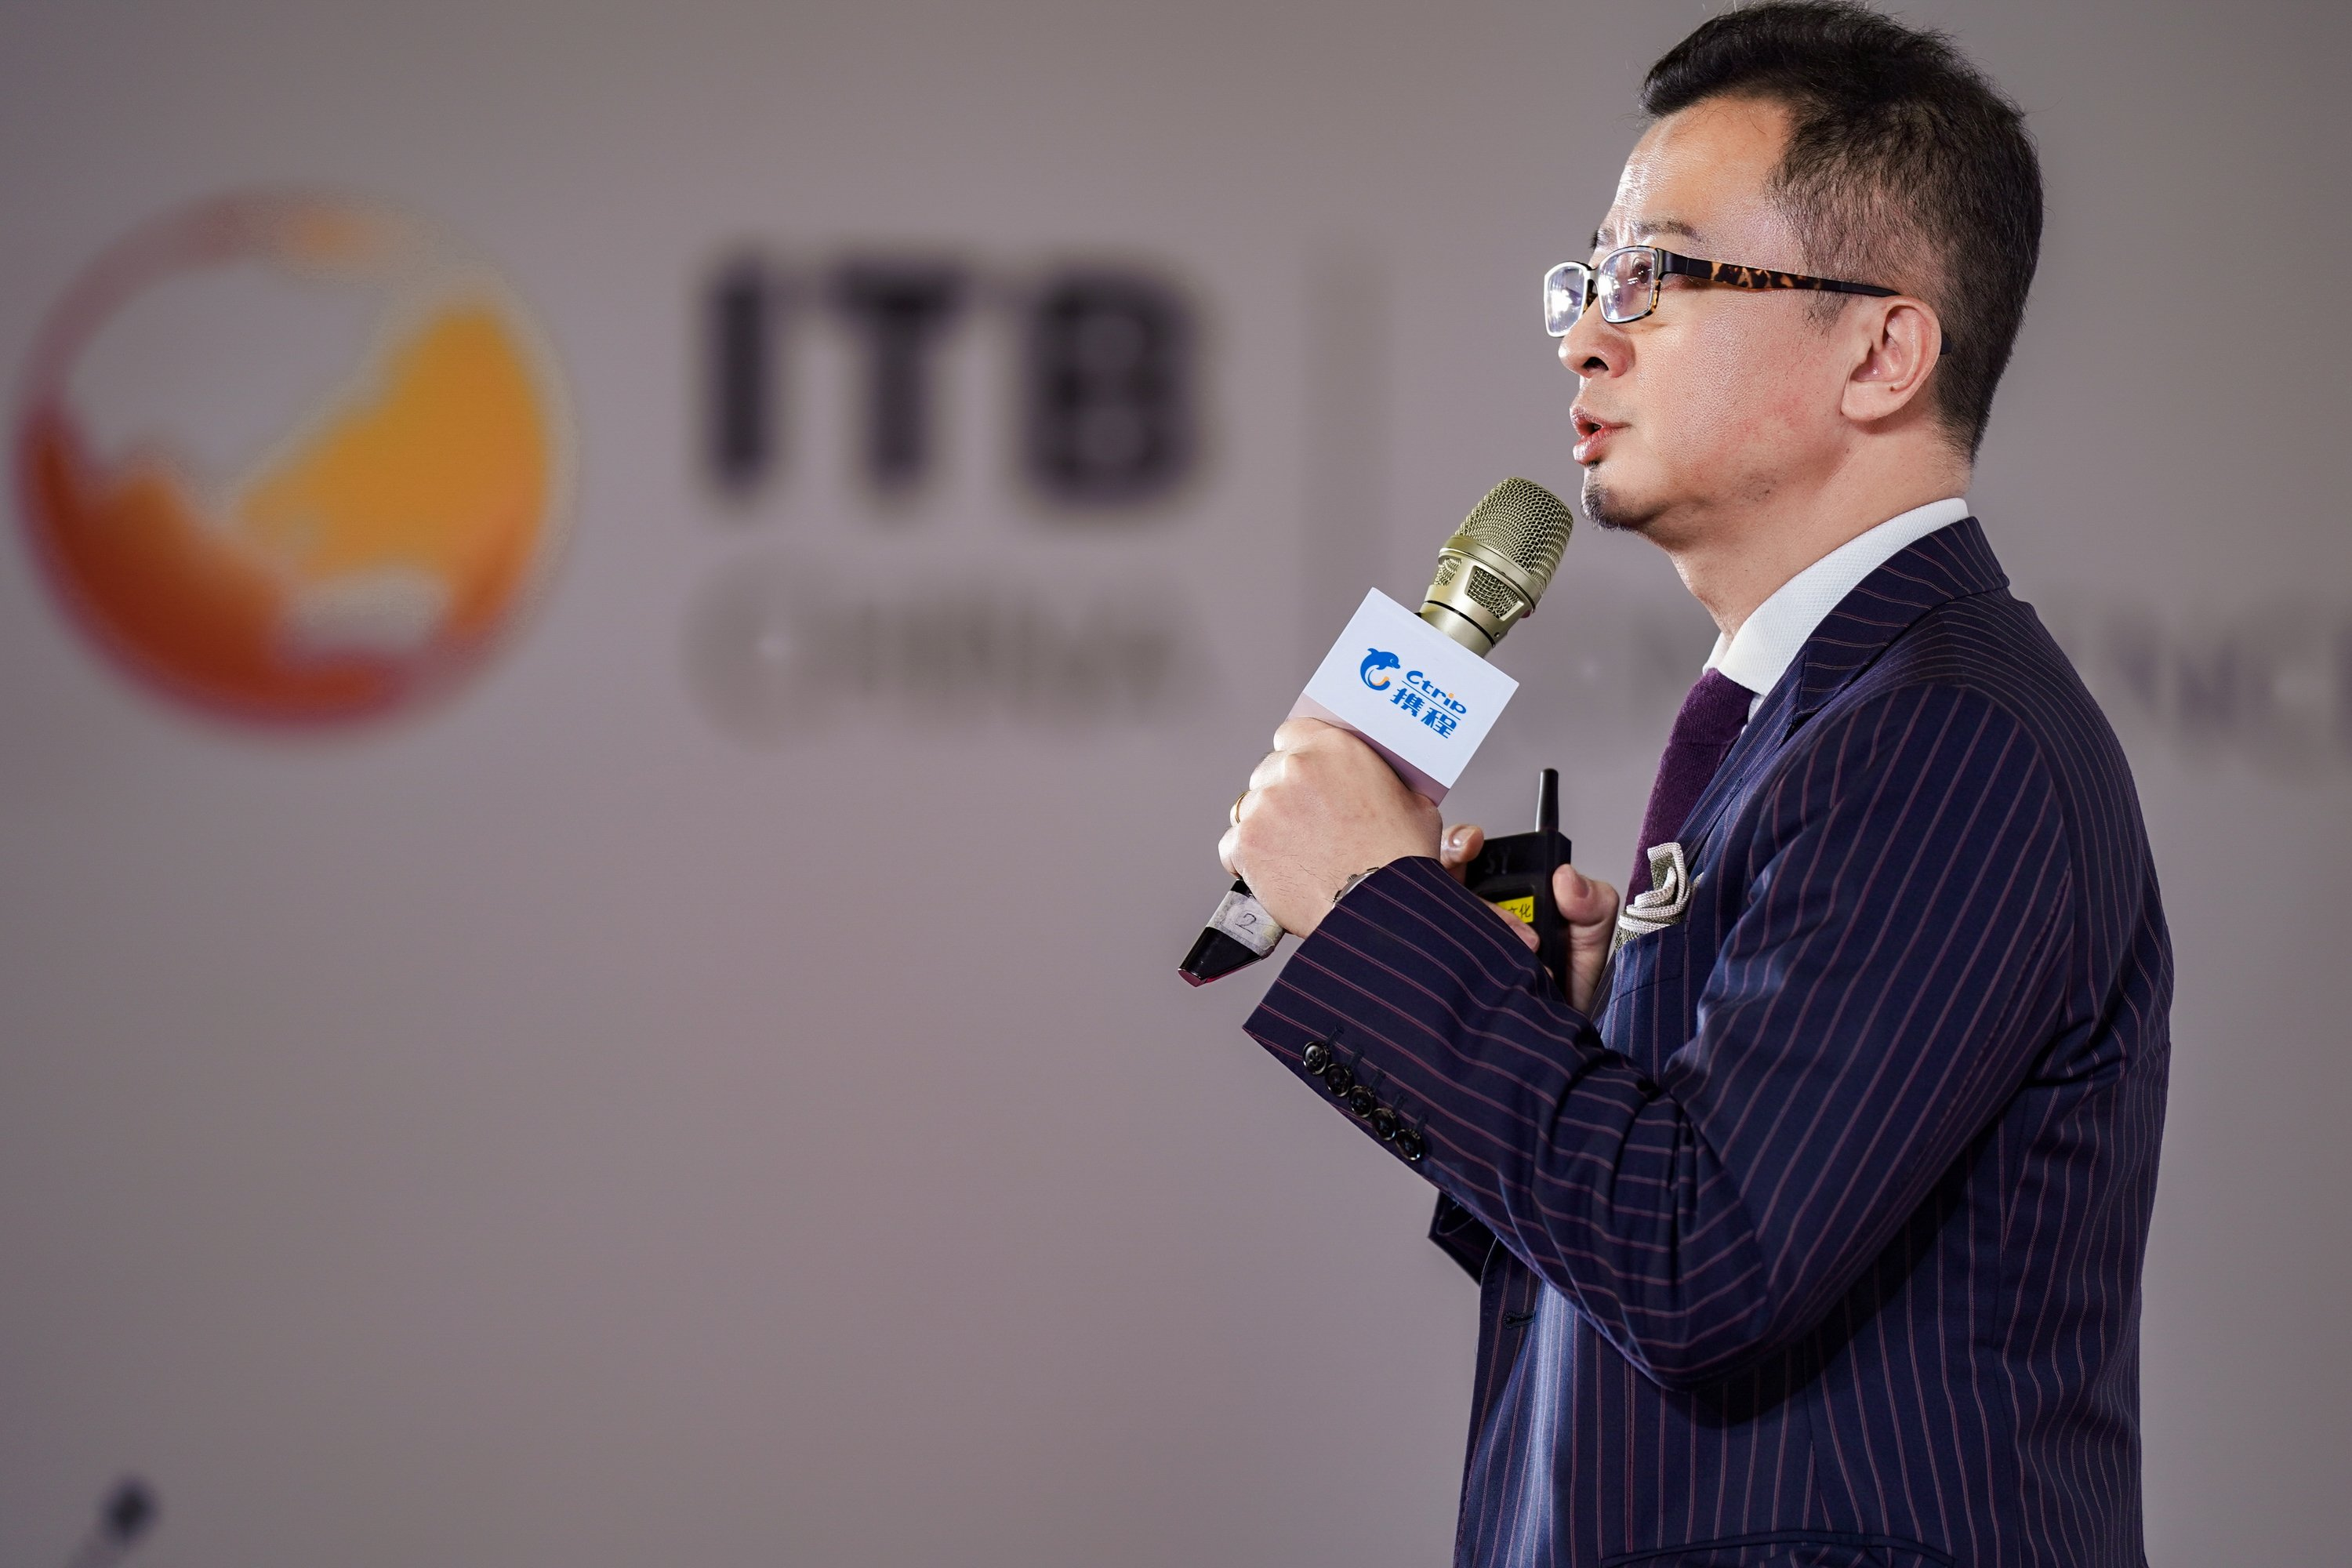 Leo Liu, President, Wyndham Hotels & Resorts, Greater China